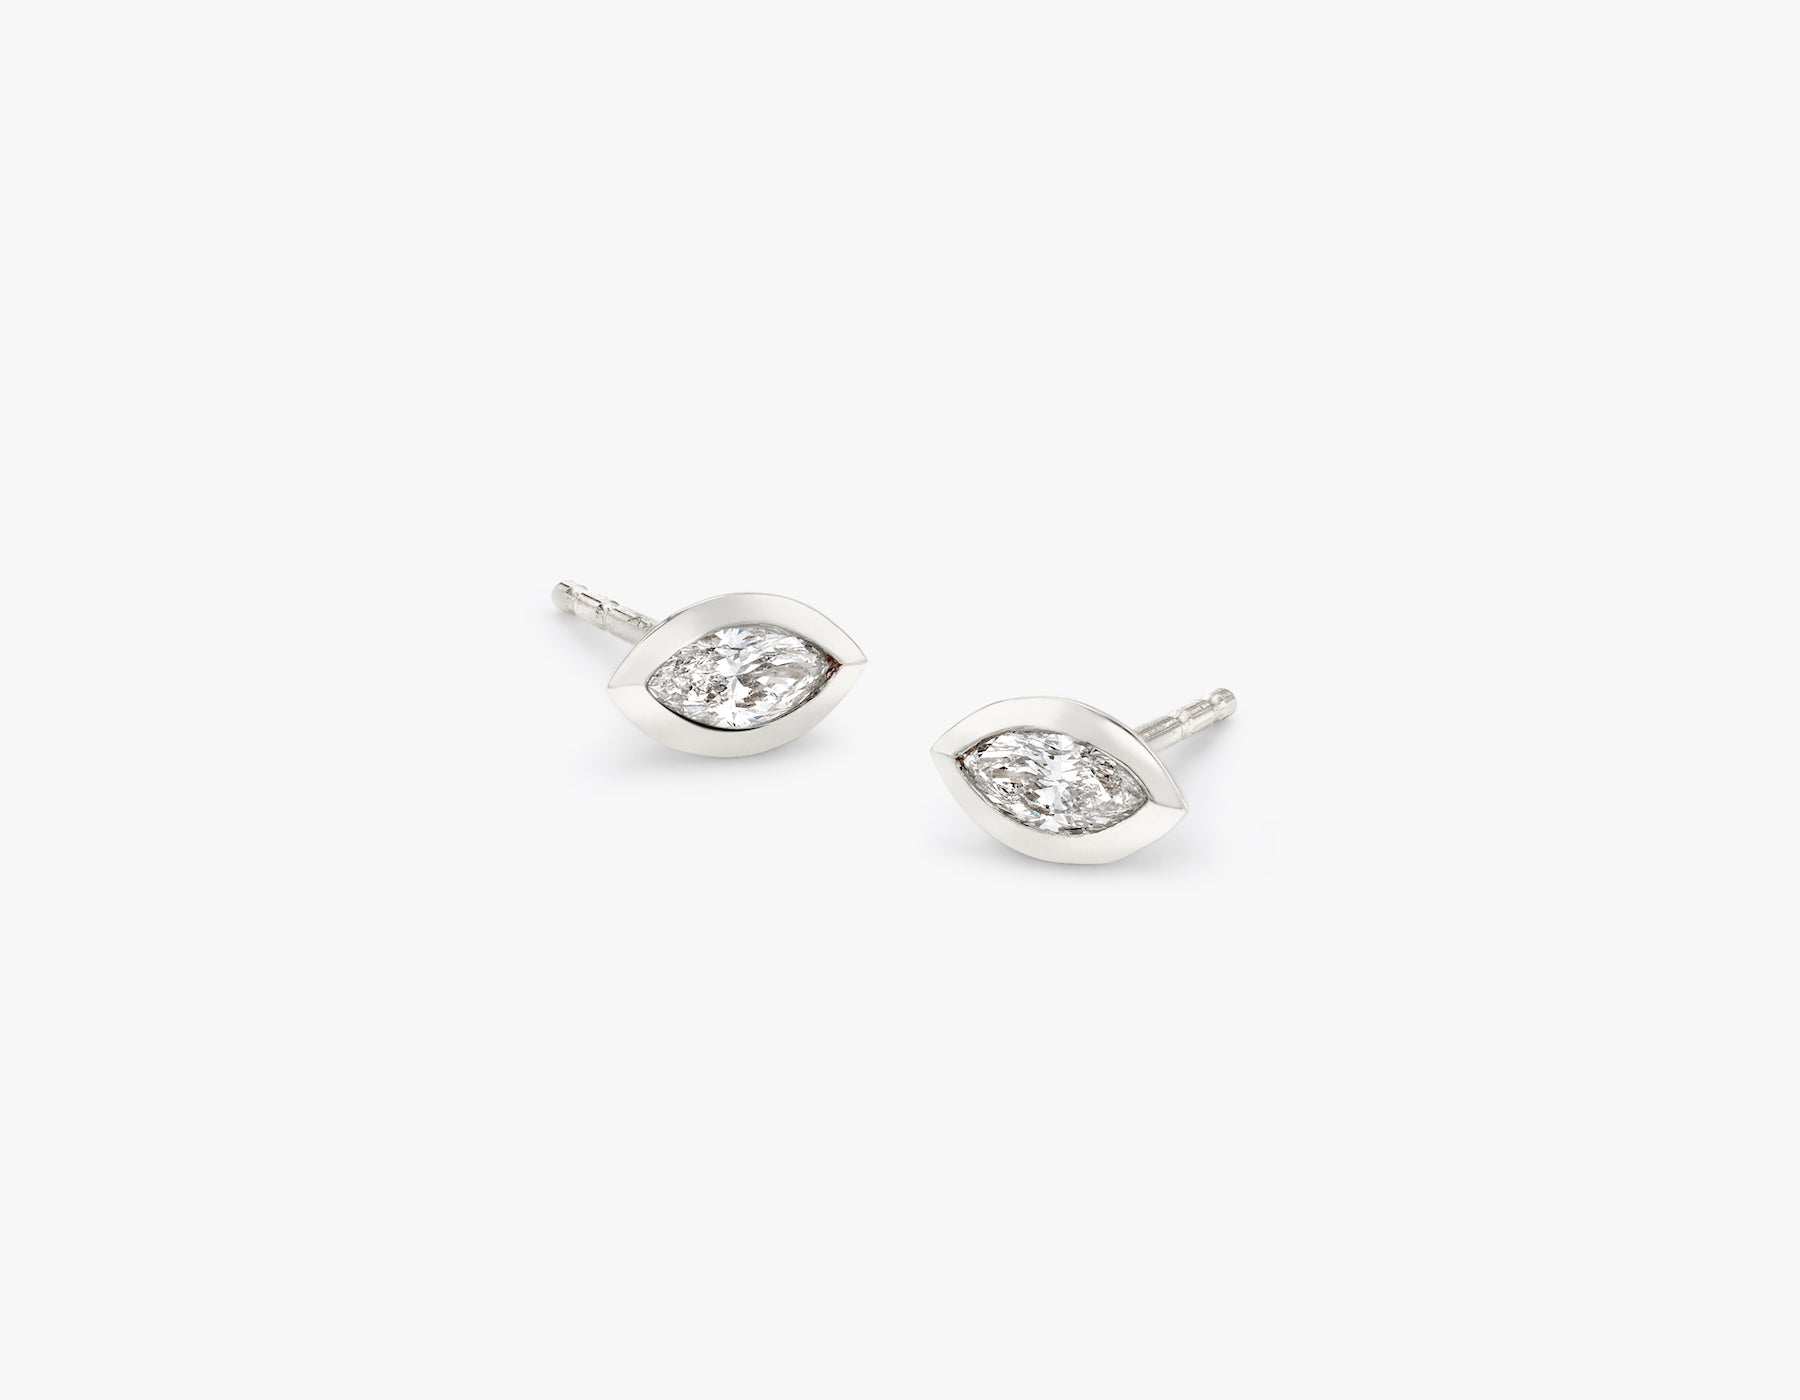 Vrai simple minimalist Marquise Diamond Bezel Earrings, 14K White Gold